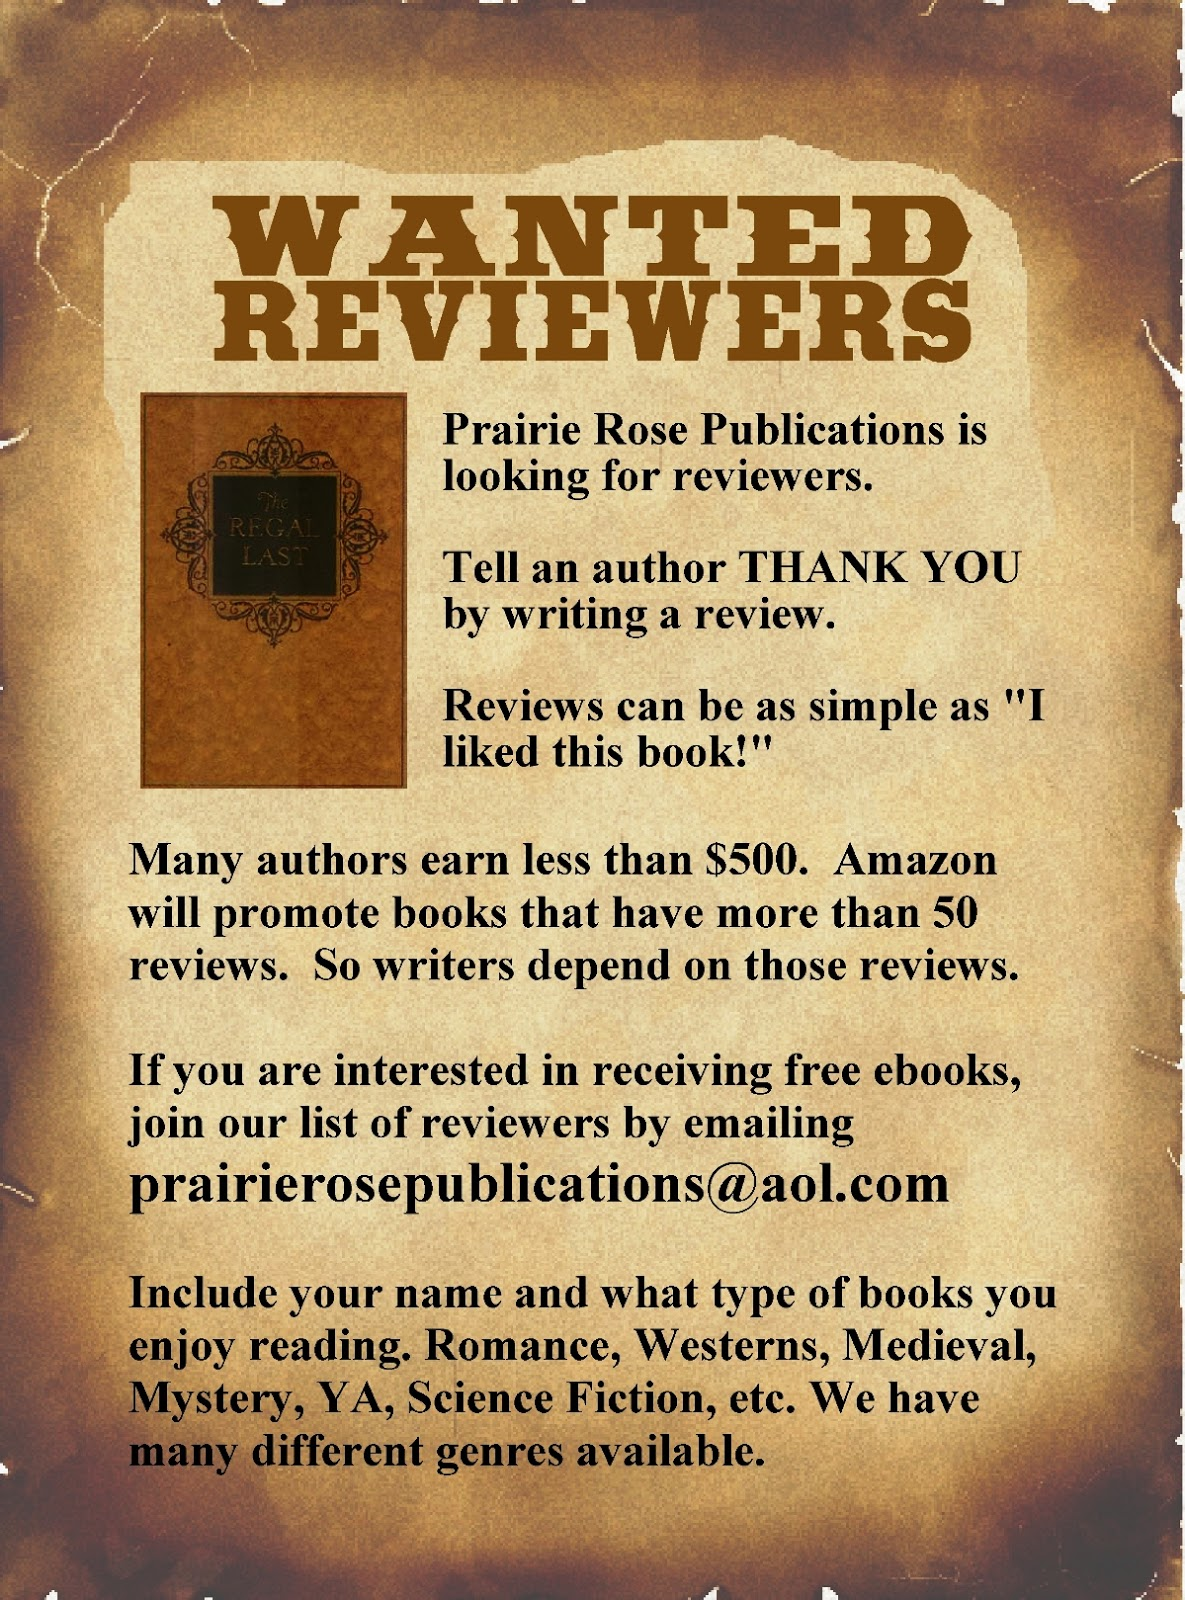 Early Reviewers: Free advance copies of books